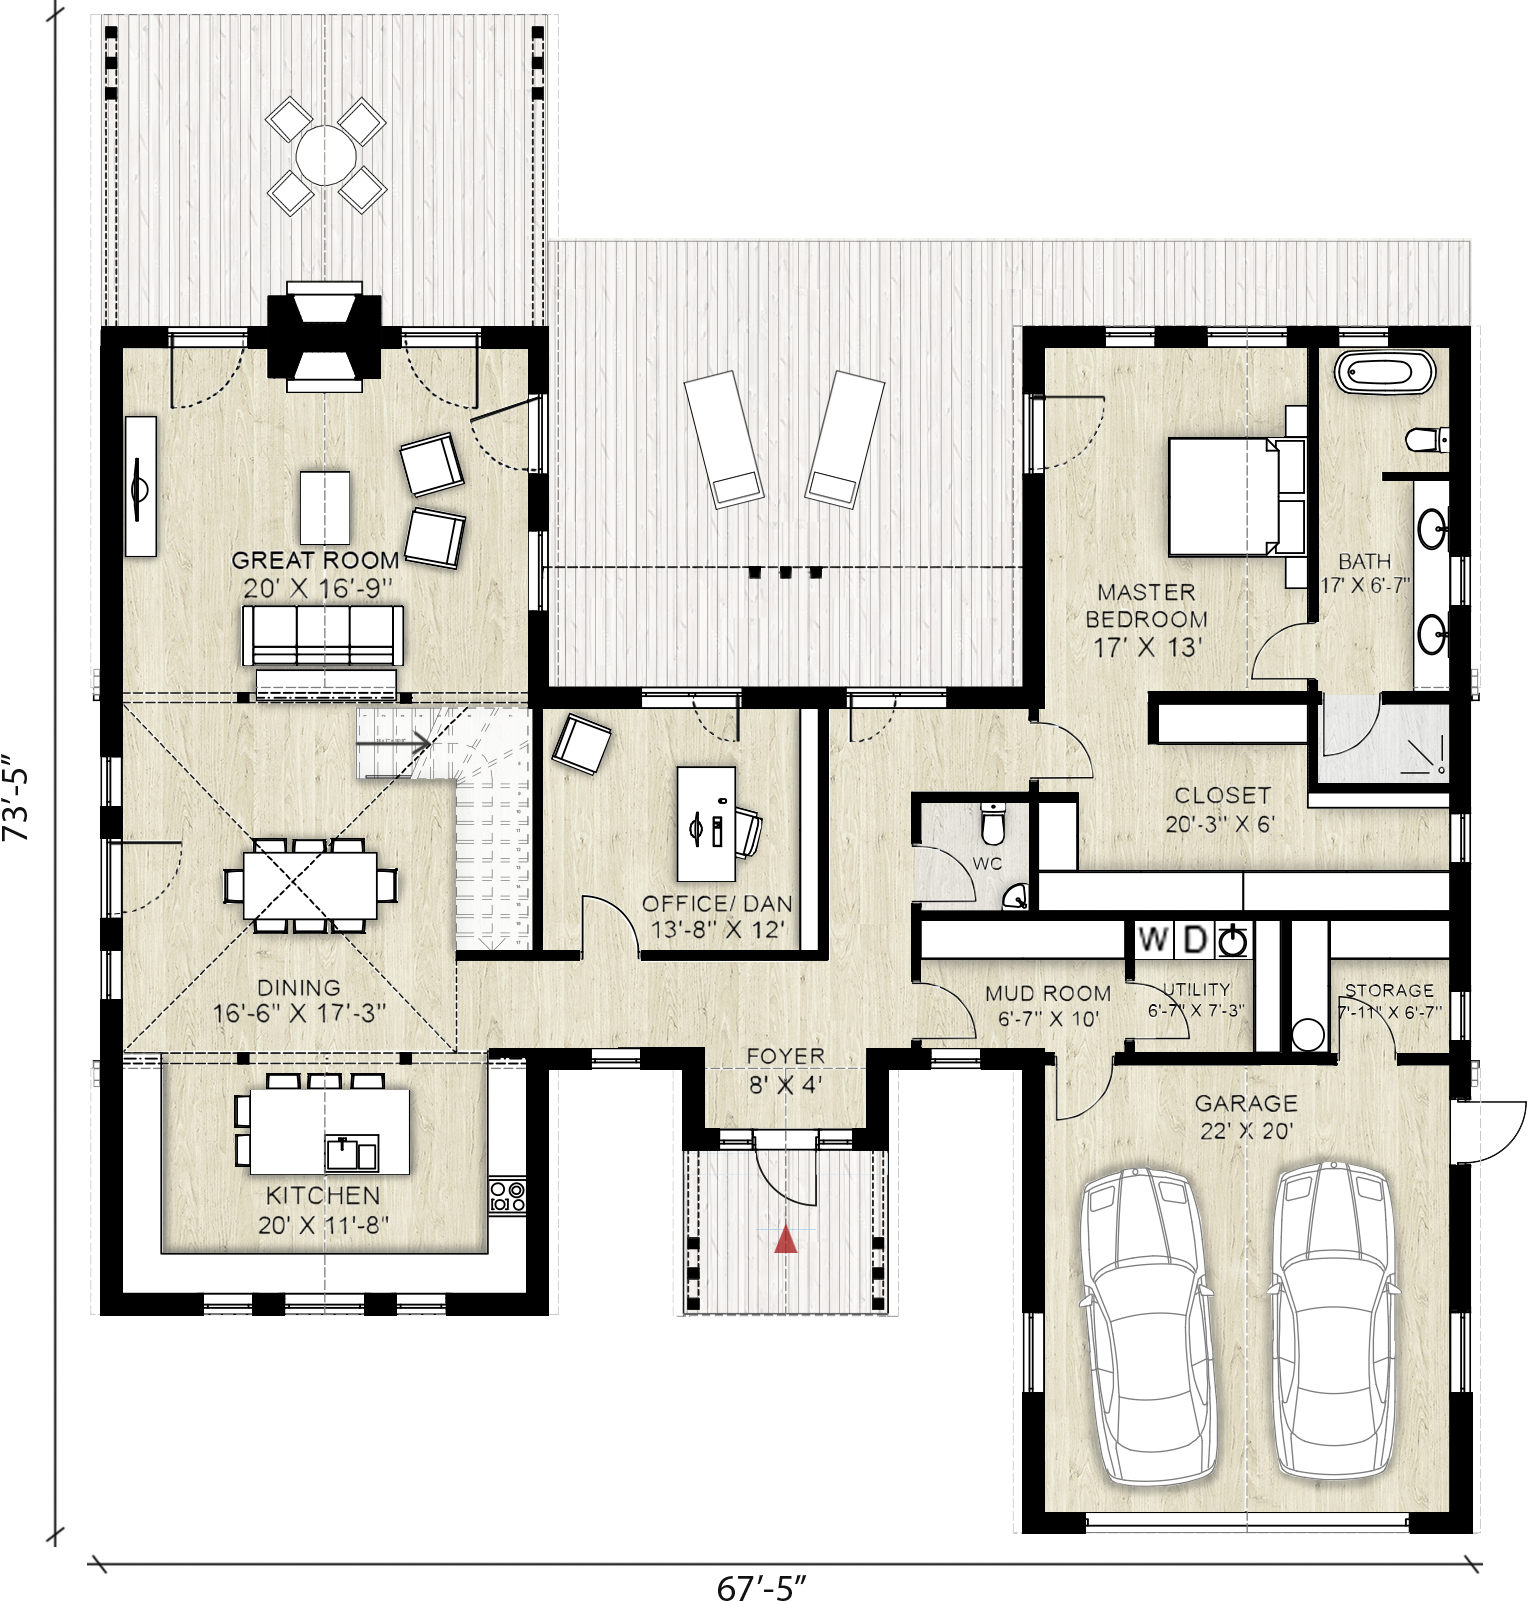 Truoba class house plan sq ft bedrooms bathrooms